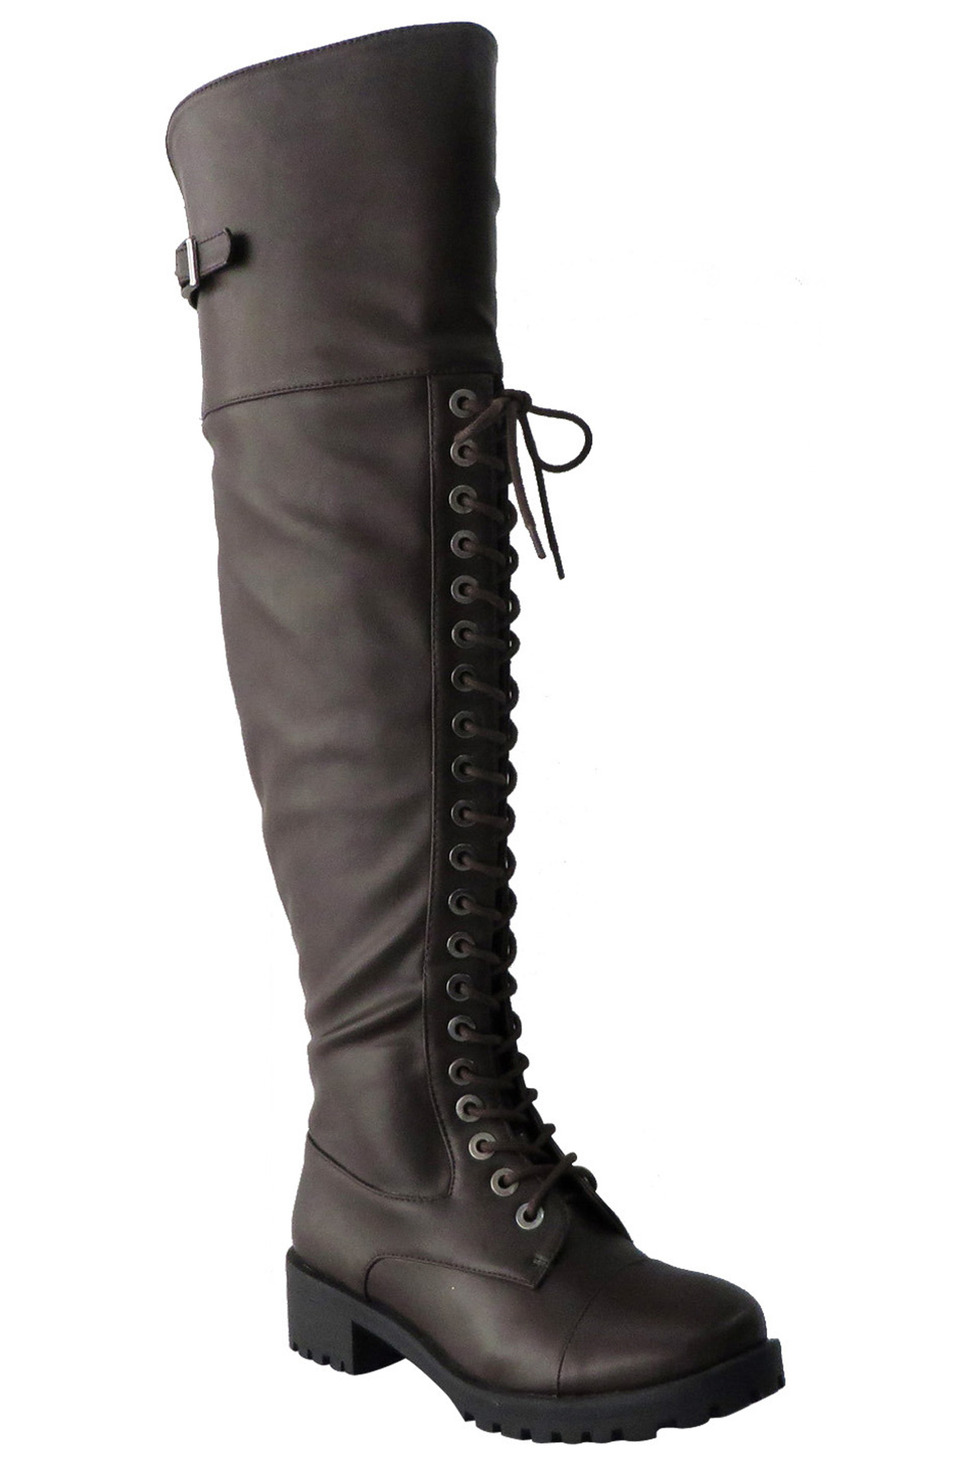 Over The Knee Combat Boots 4NZHVyIr